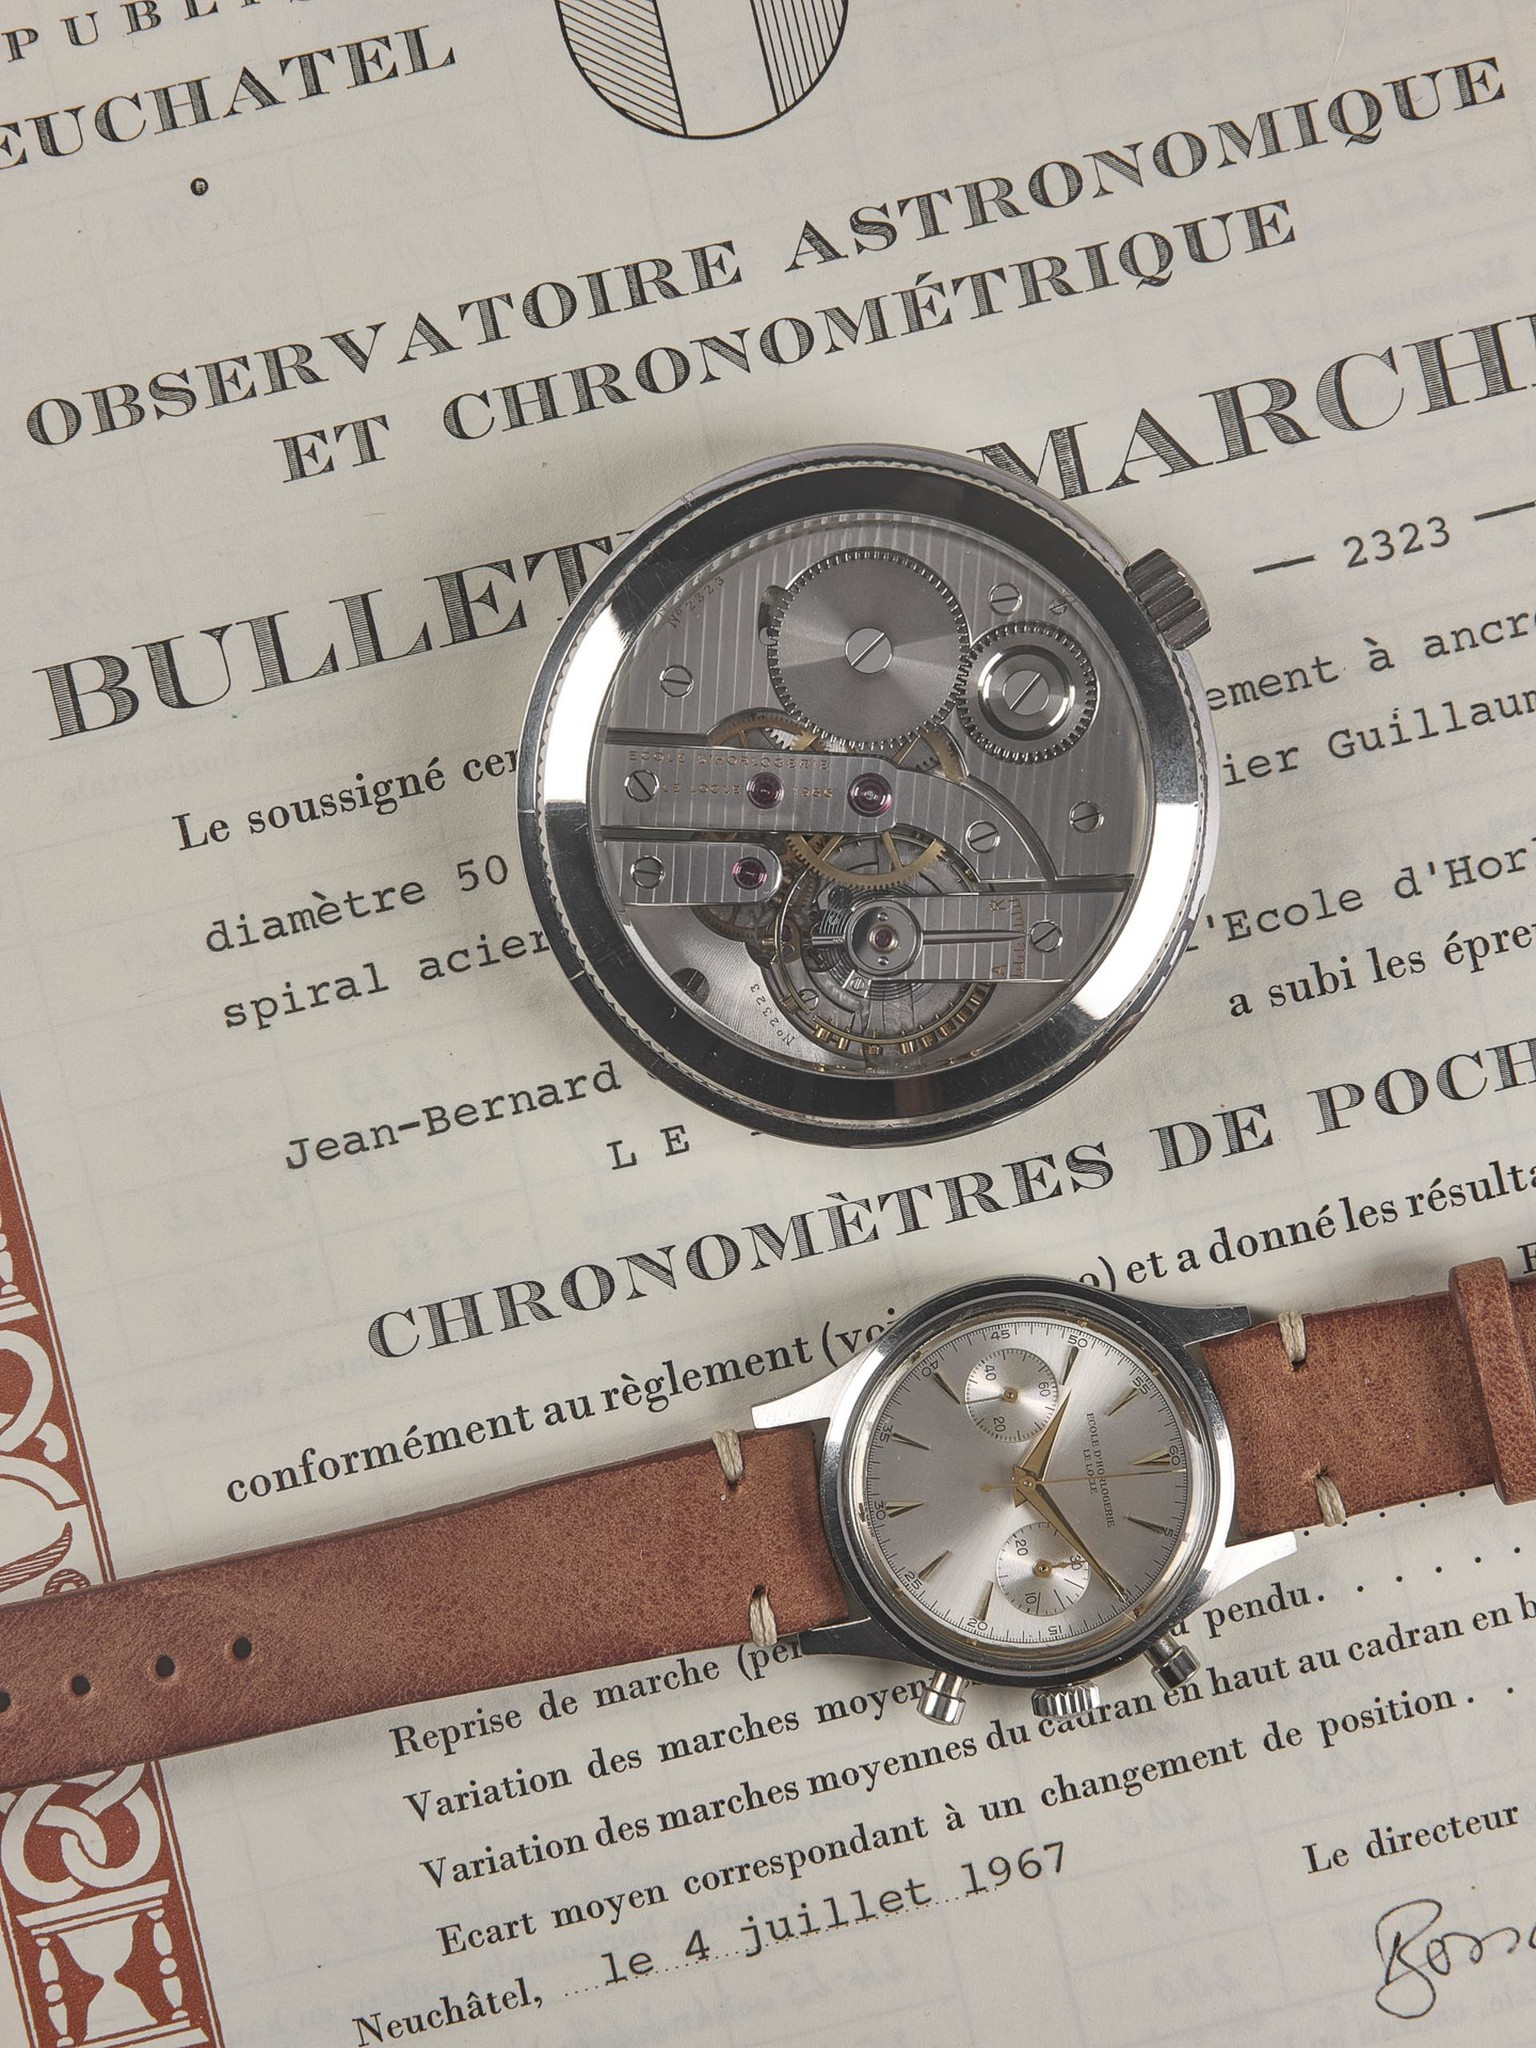 Ecole d'Horlogerie Le Locle observatory chronometer pocket watch and wristwatch full set